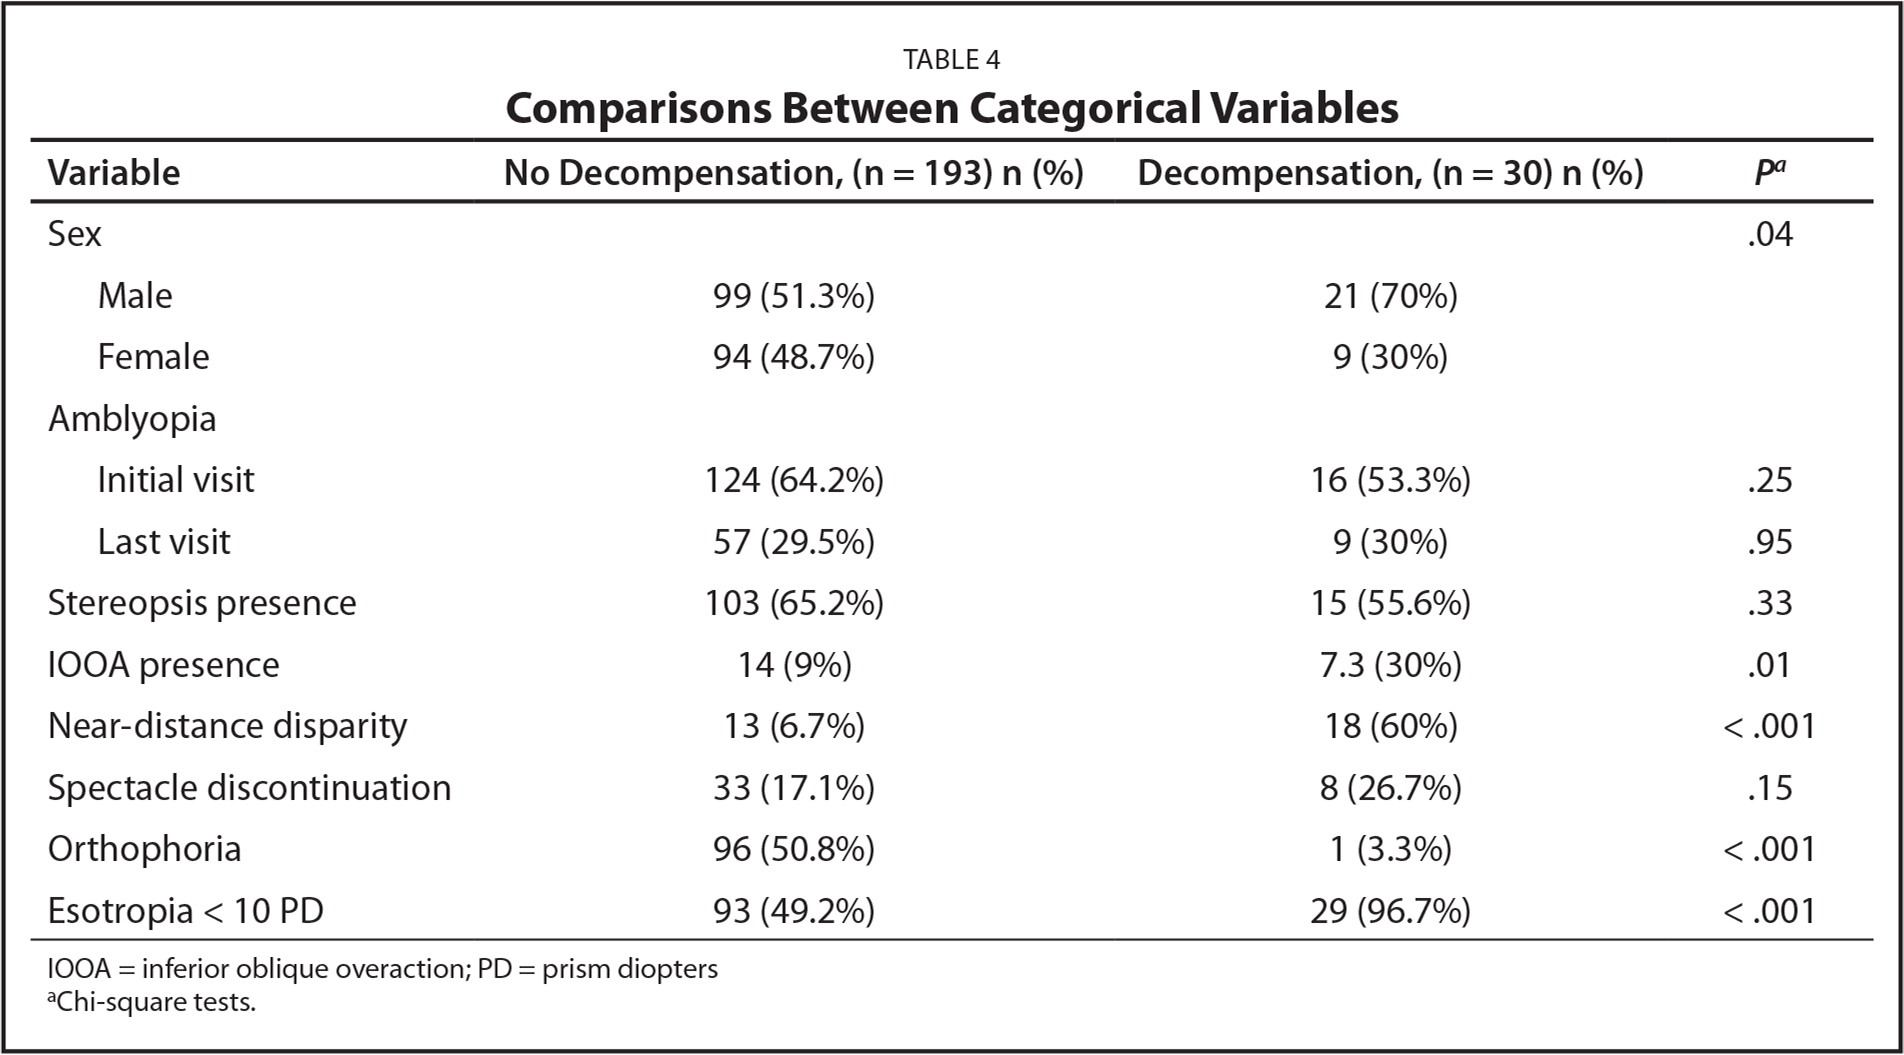 Comparisons Between Categorical Variables